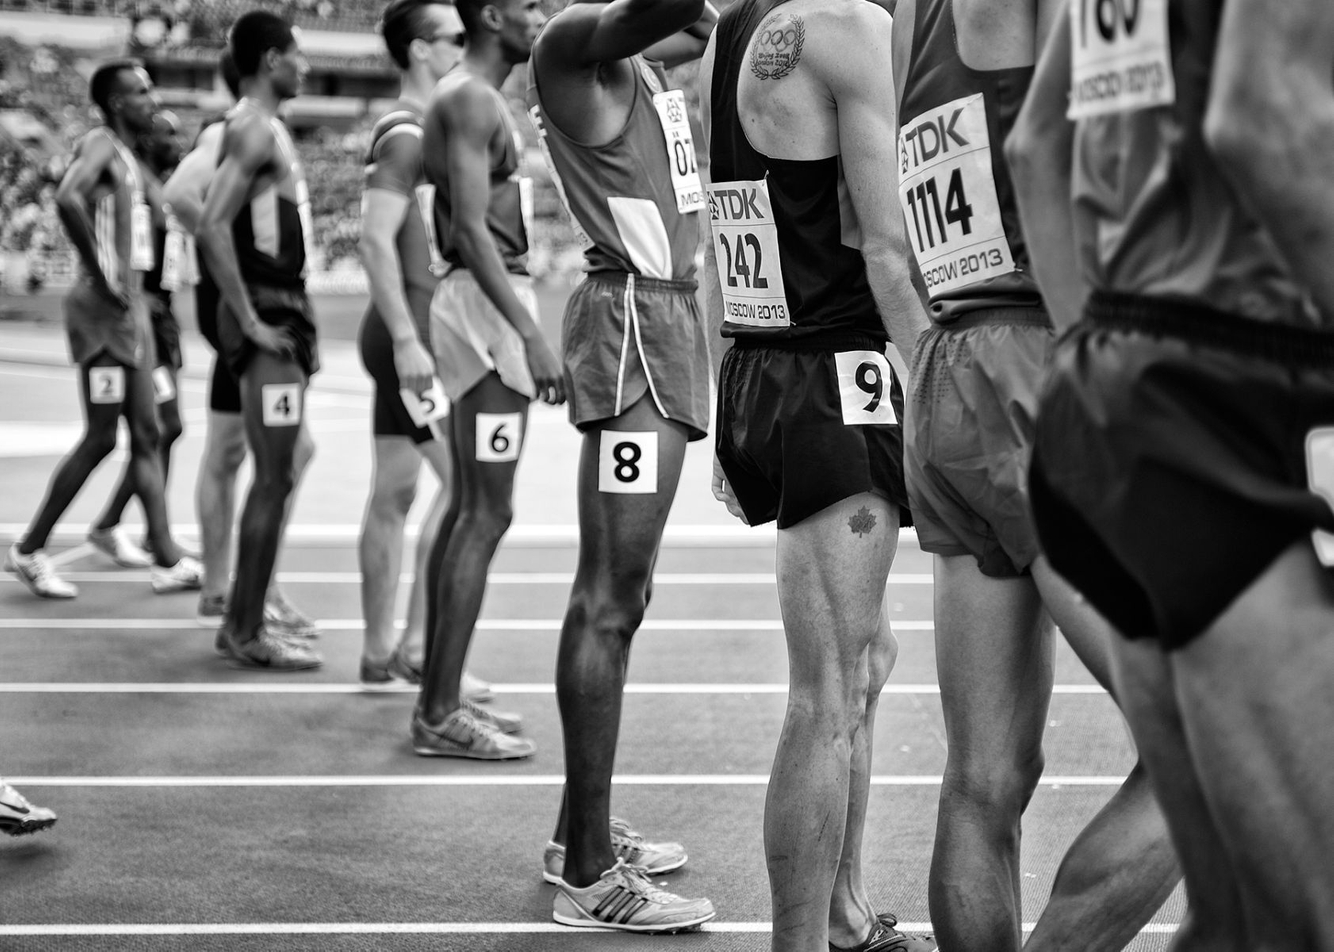 1moscow_2013_1500m_line_bw_jeffcohenphoto_lb.jpg